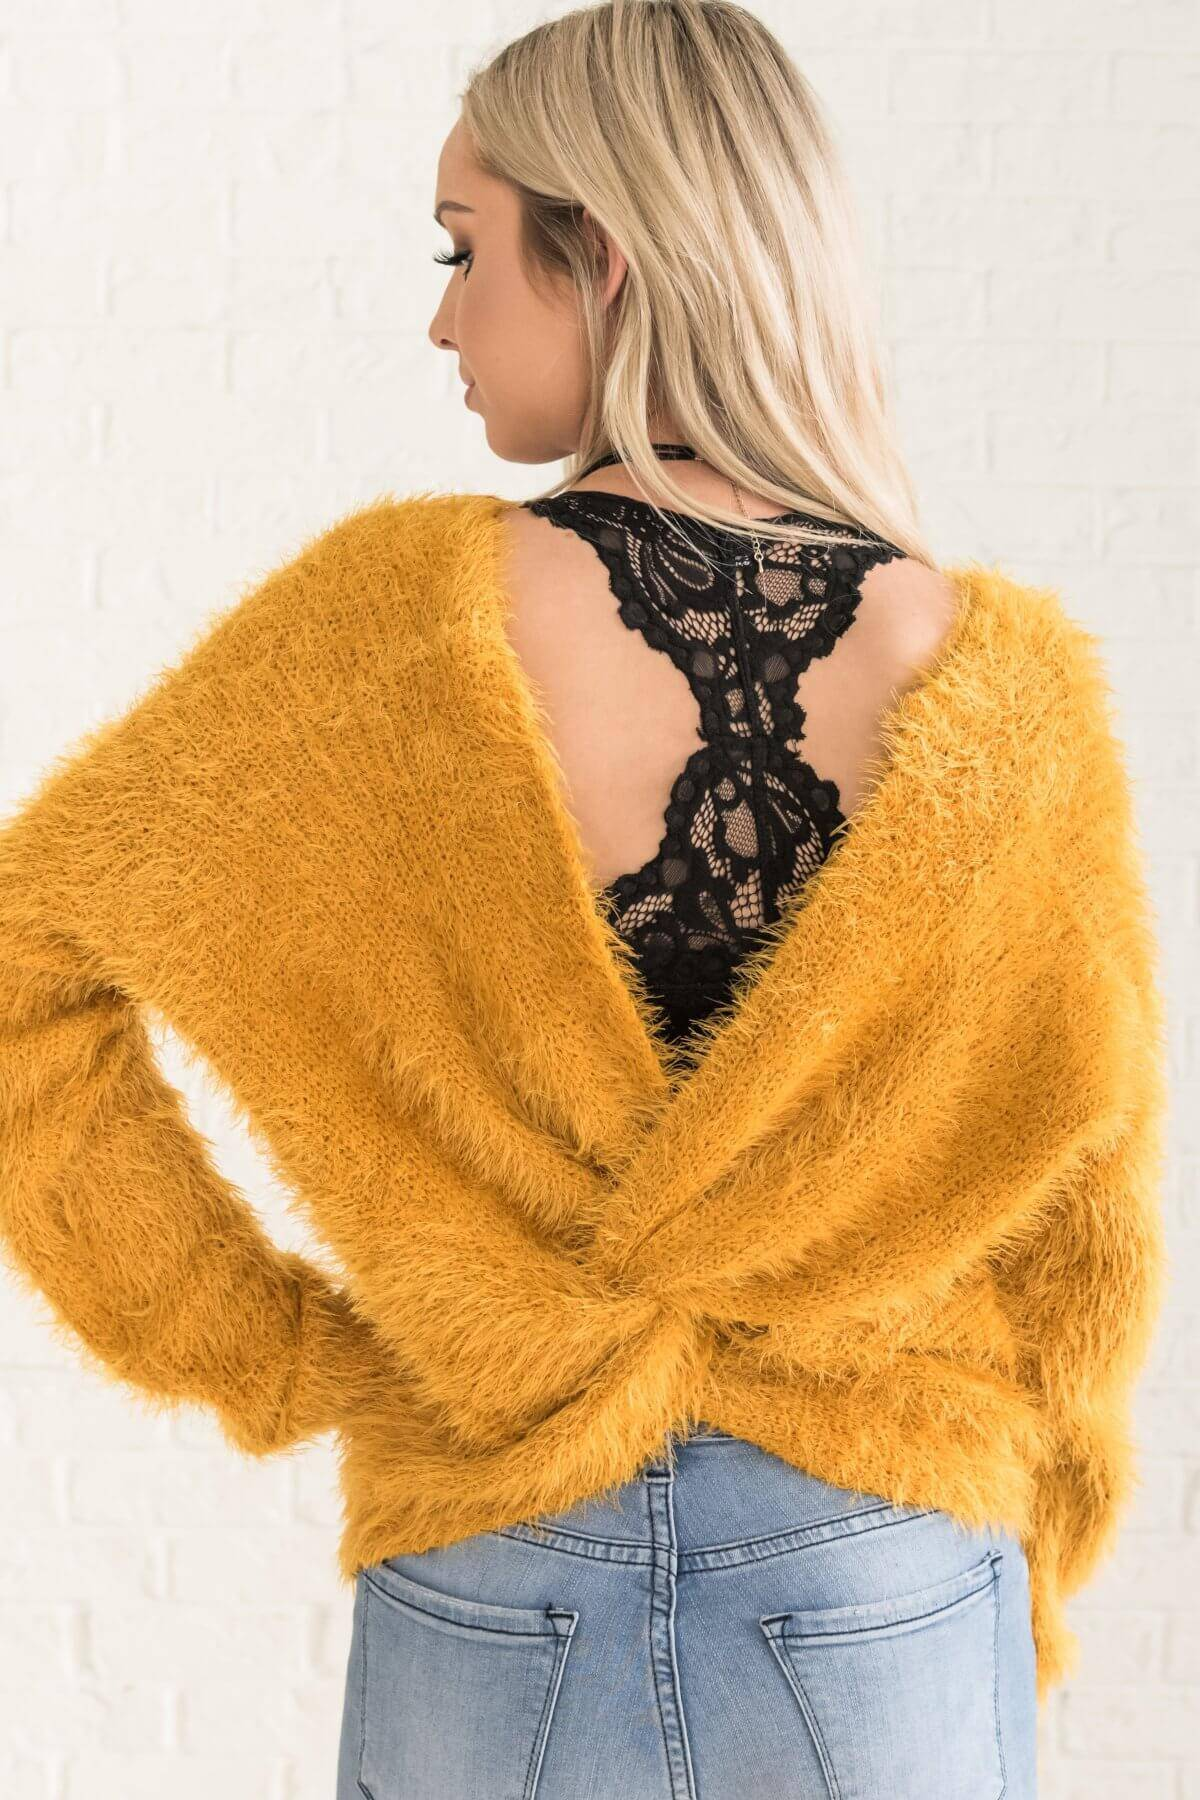 Yellow Fuzzy Eyelash Knit Sweater with Twist Infinity Knot Open Back